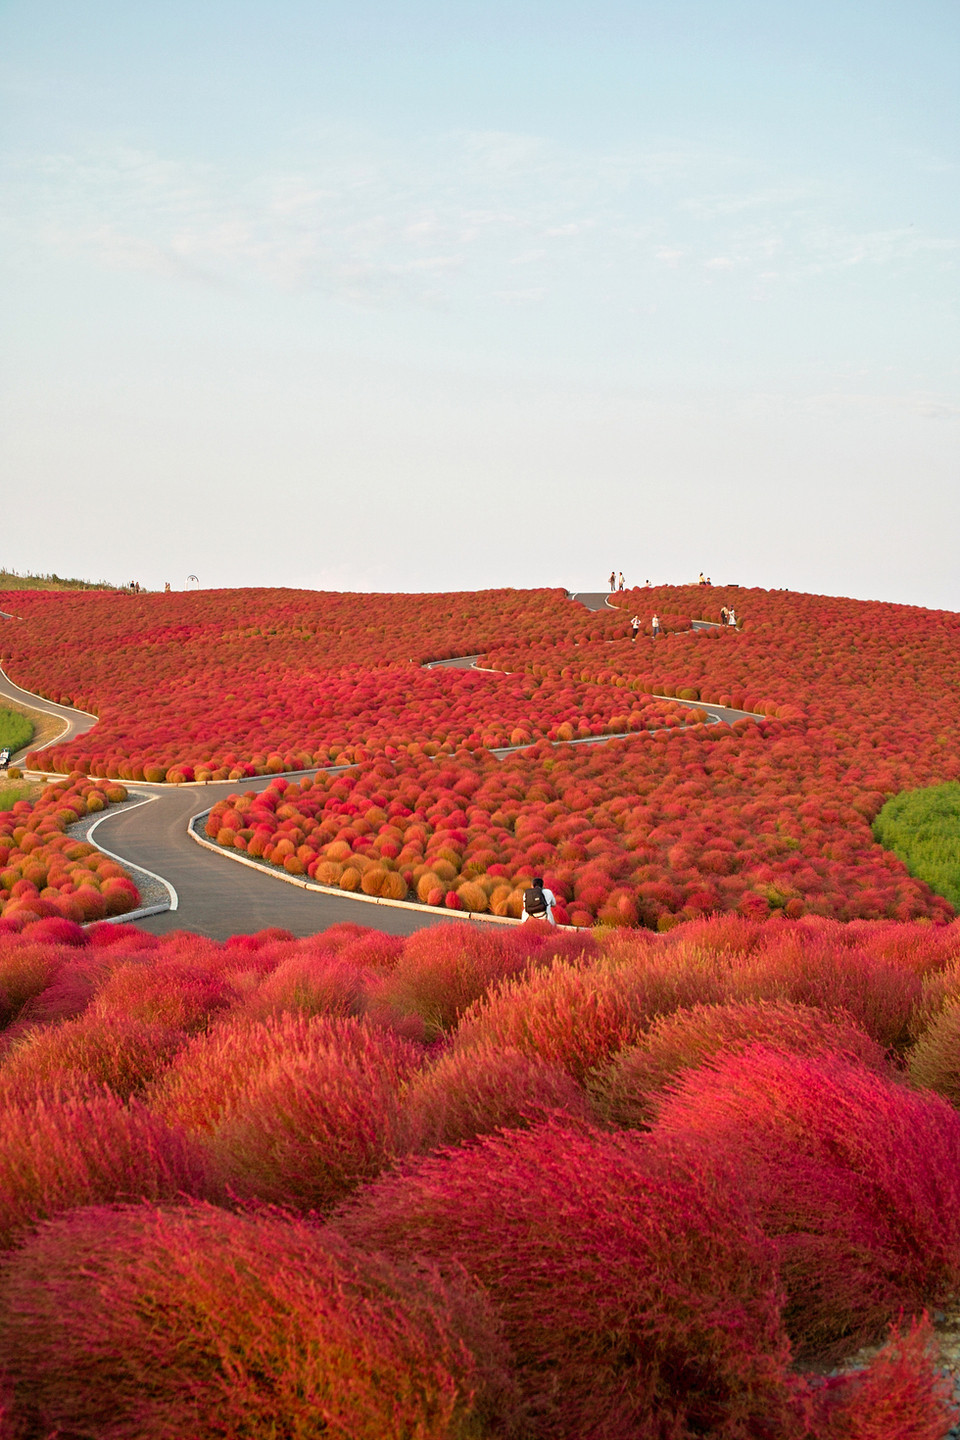 Kochia Hill, Hitachinaka City via